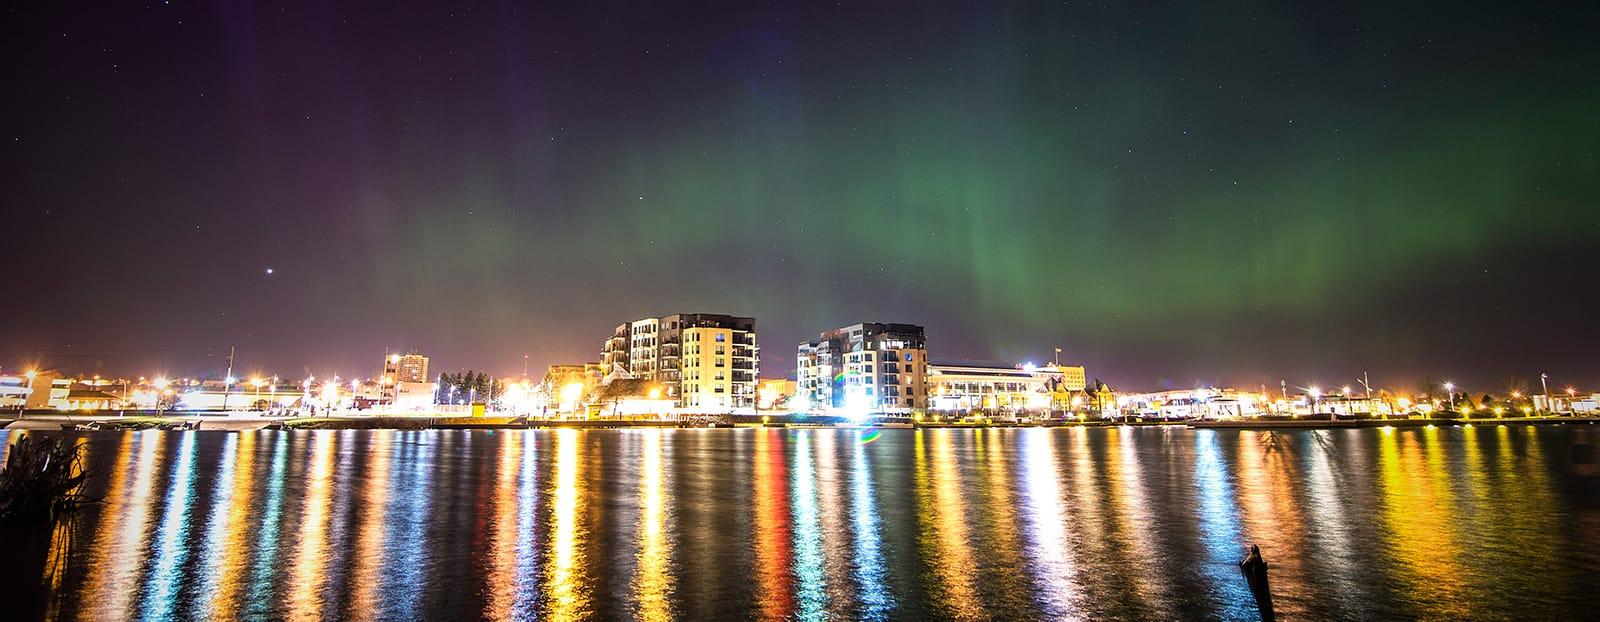 northern lights over city on waterfront